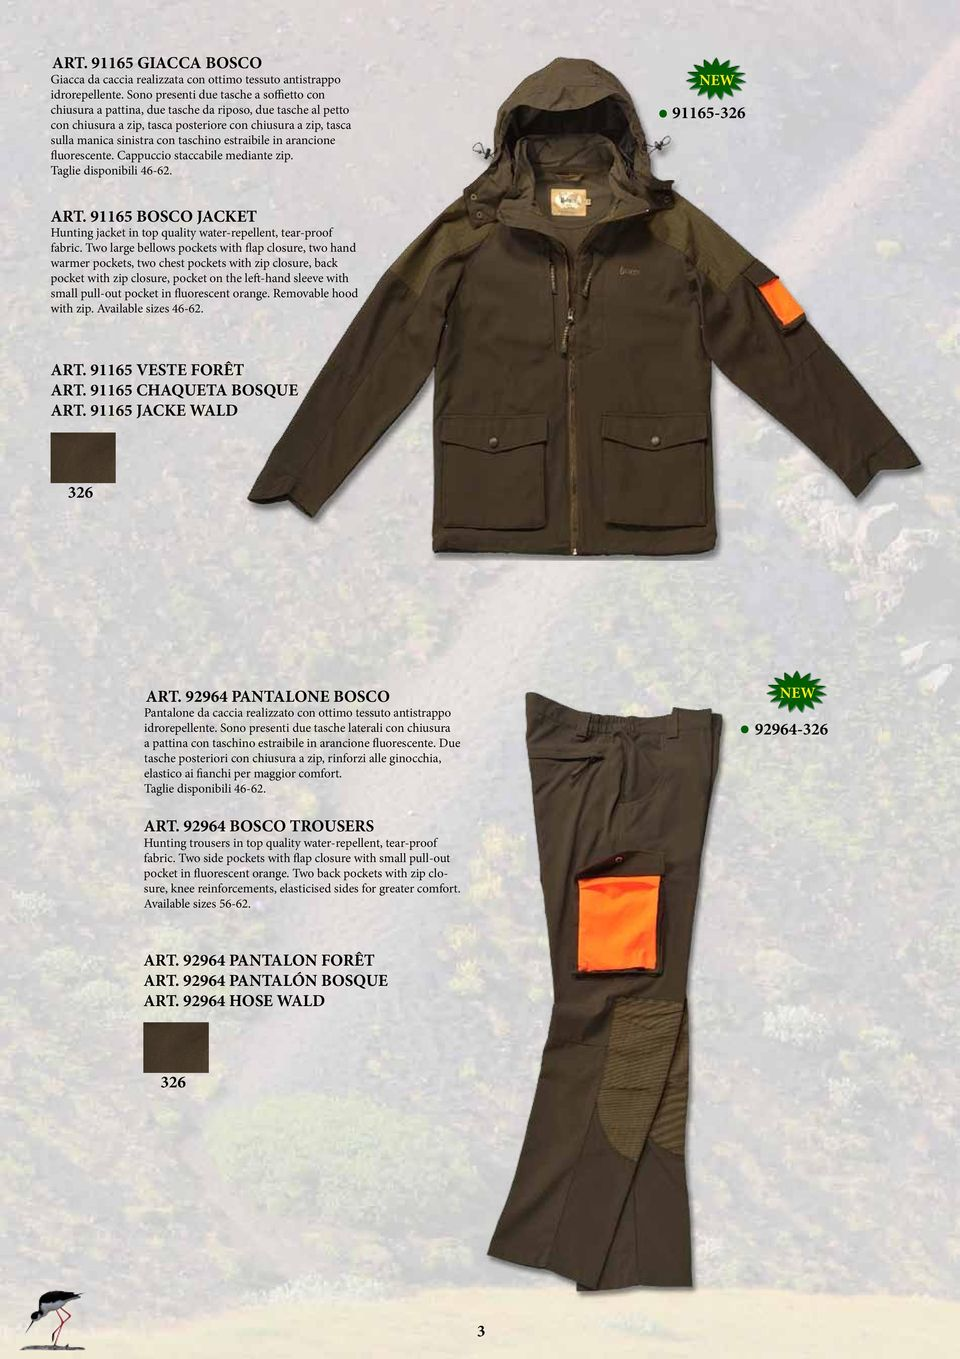 91165-326 ART 91165 BOSCO JACKET Hunting jacket in top quality water-repellent, tear-proof fabric Two large bellows pockets with flap closure, two hand warmer pockets, two chest pockets with zip